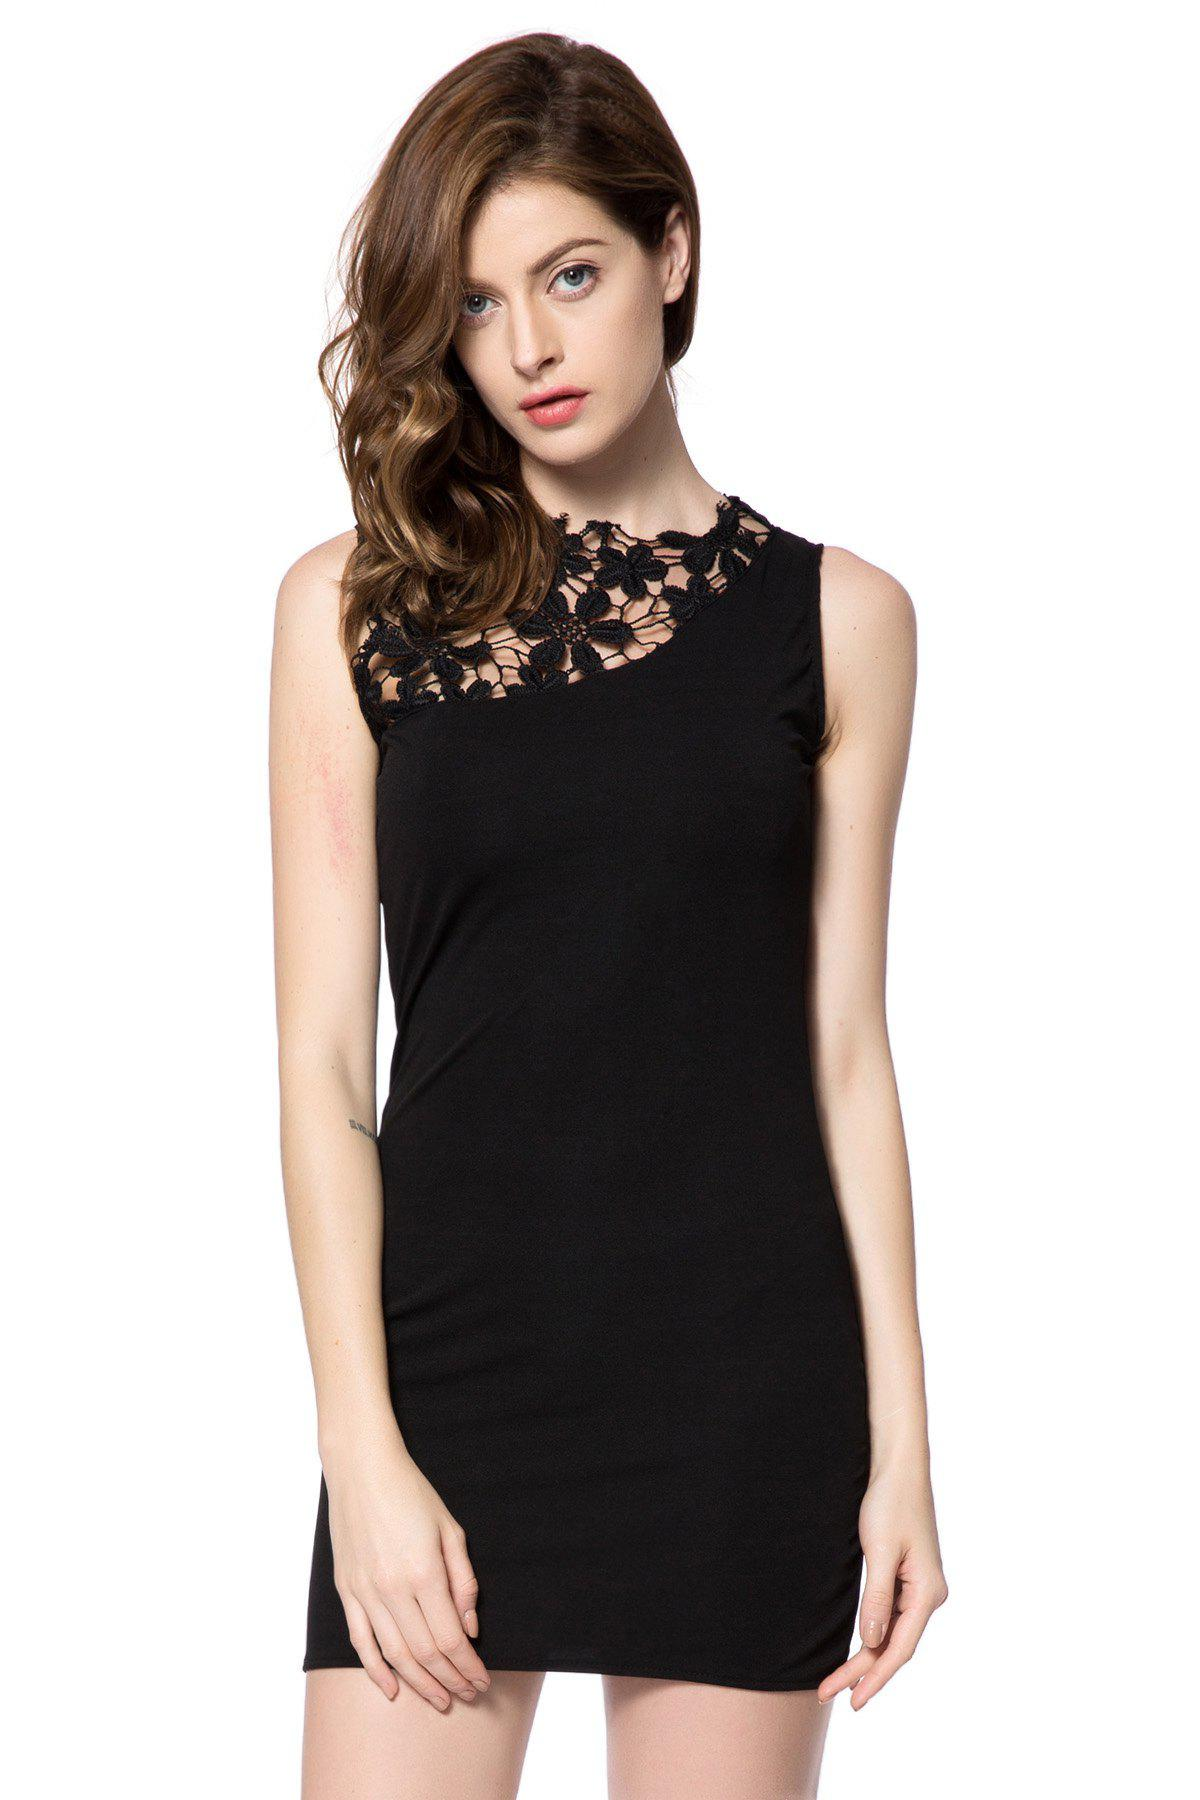 Elegant Round Neck Sleeveless Lace Splicing Black Dress For Women